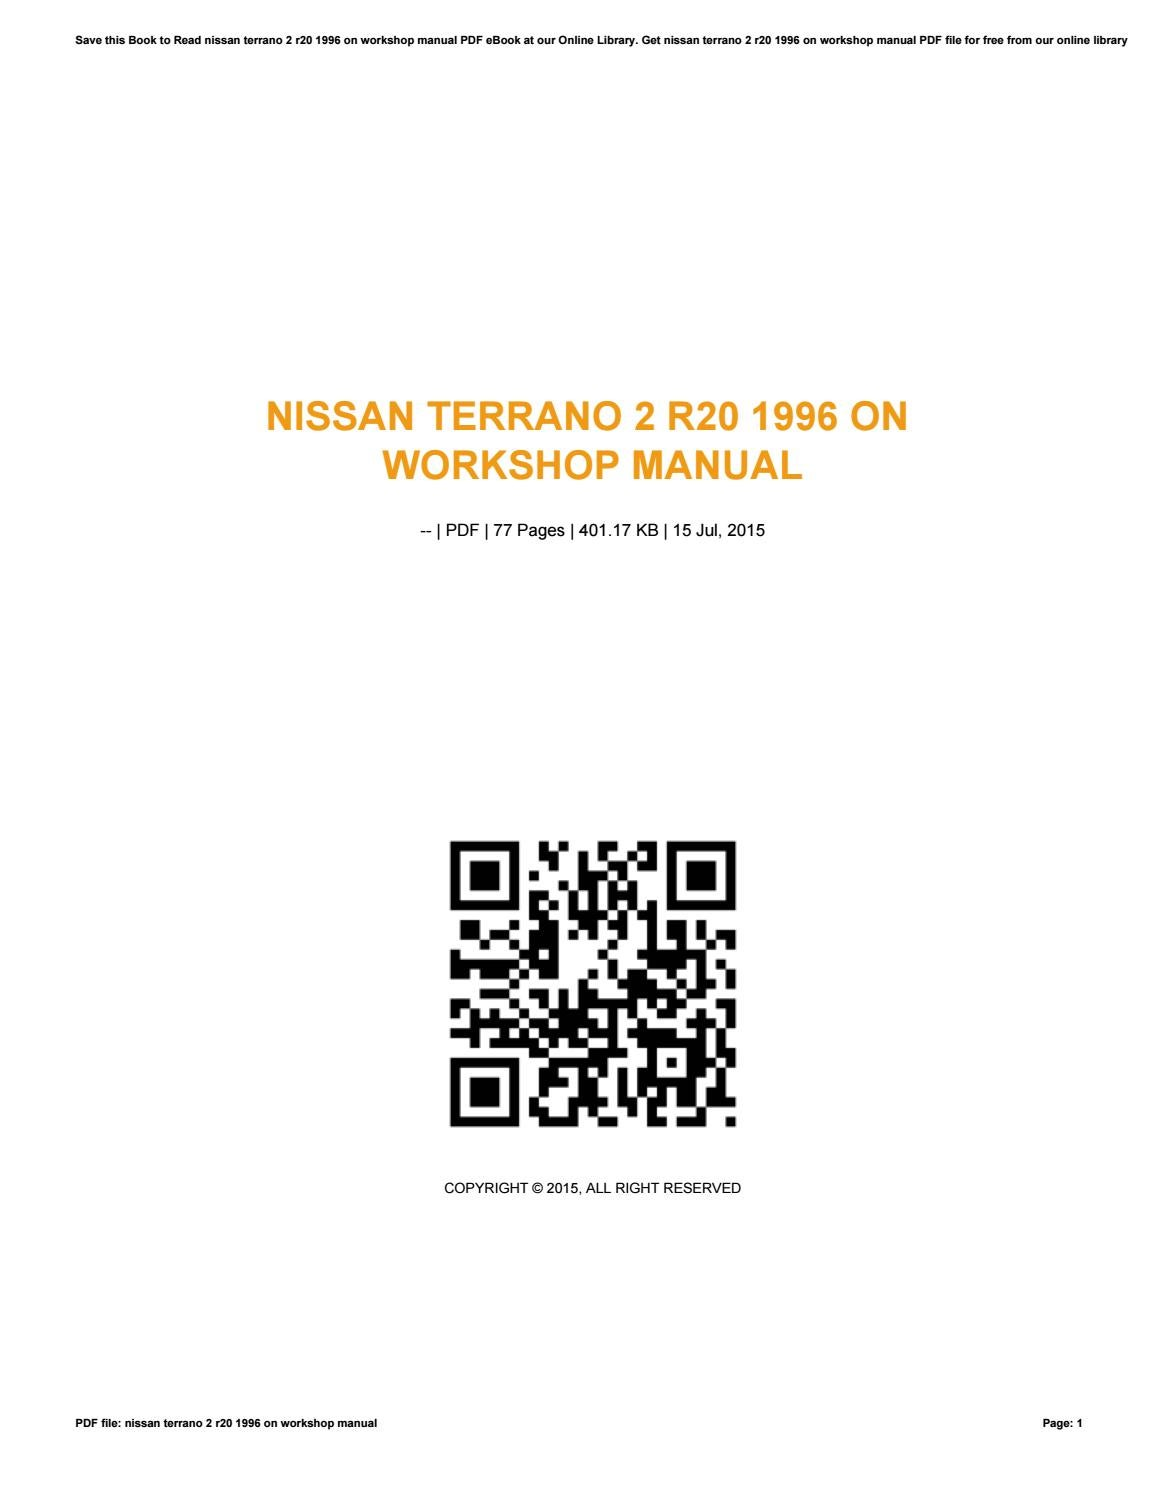 nissan terrano 2 r20 1996 on workshop manual by tm2mail854 issuu rh issuu com terrano wd21 workshop manual nissan terrano workshop manual td27